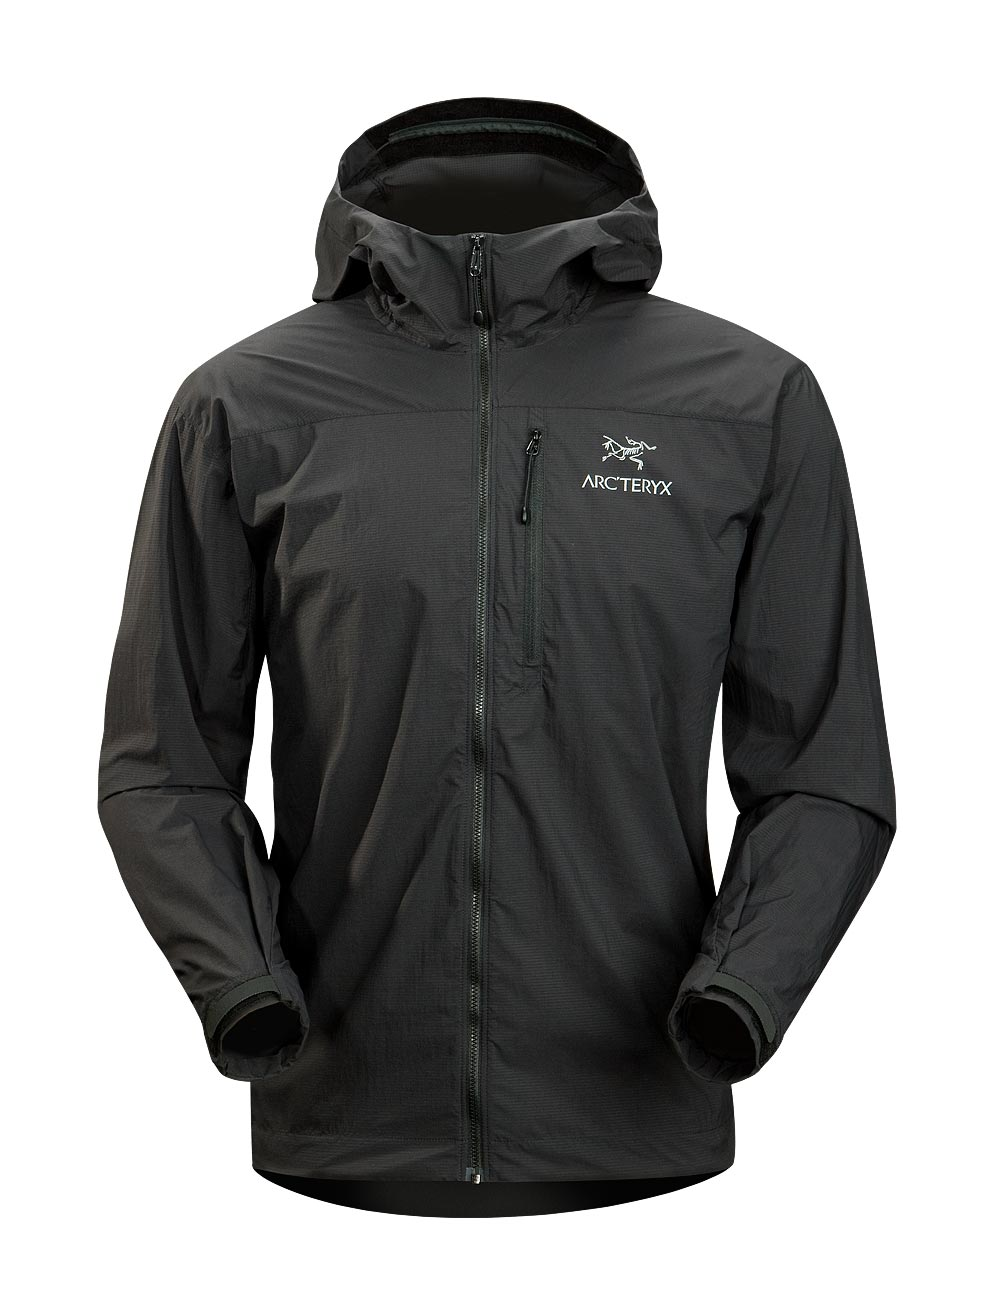 Arcteryx Jackets Women Black Squamish Hoody Unisex